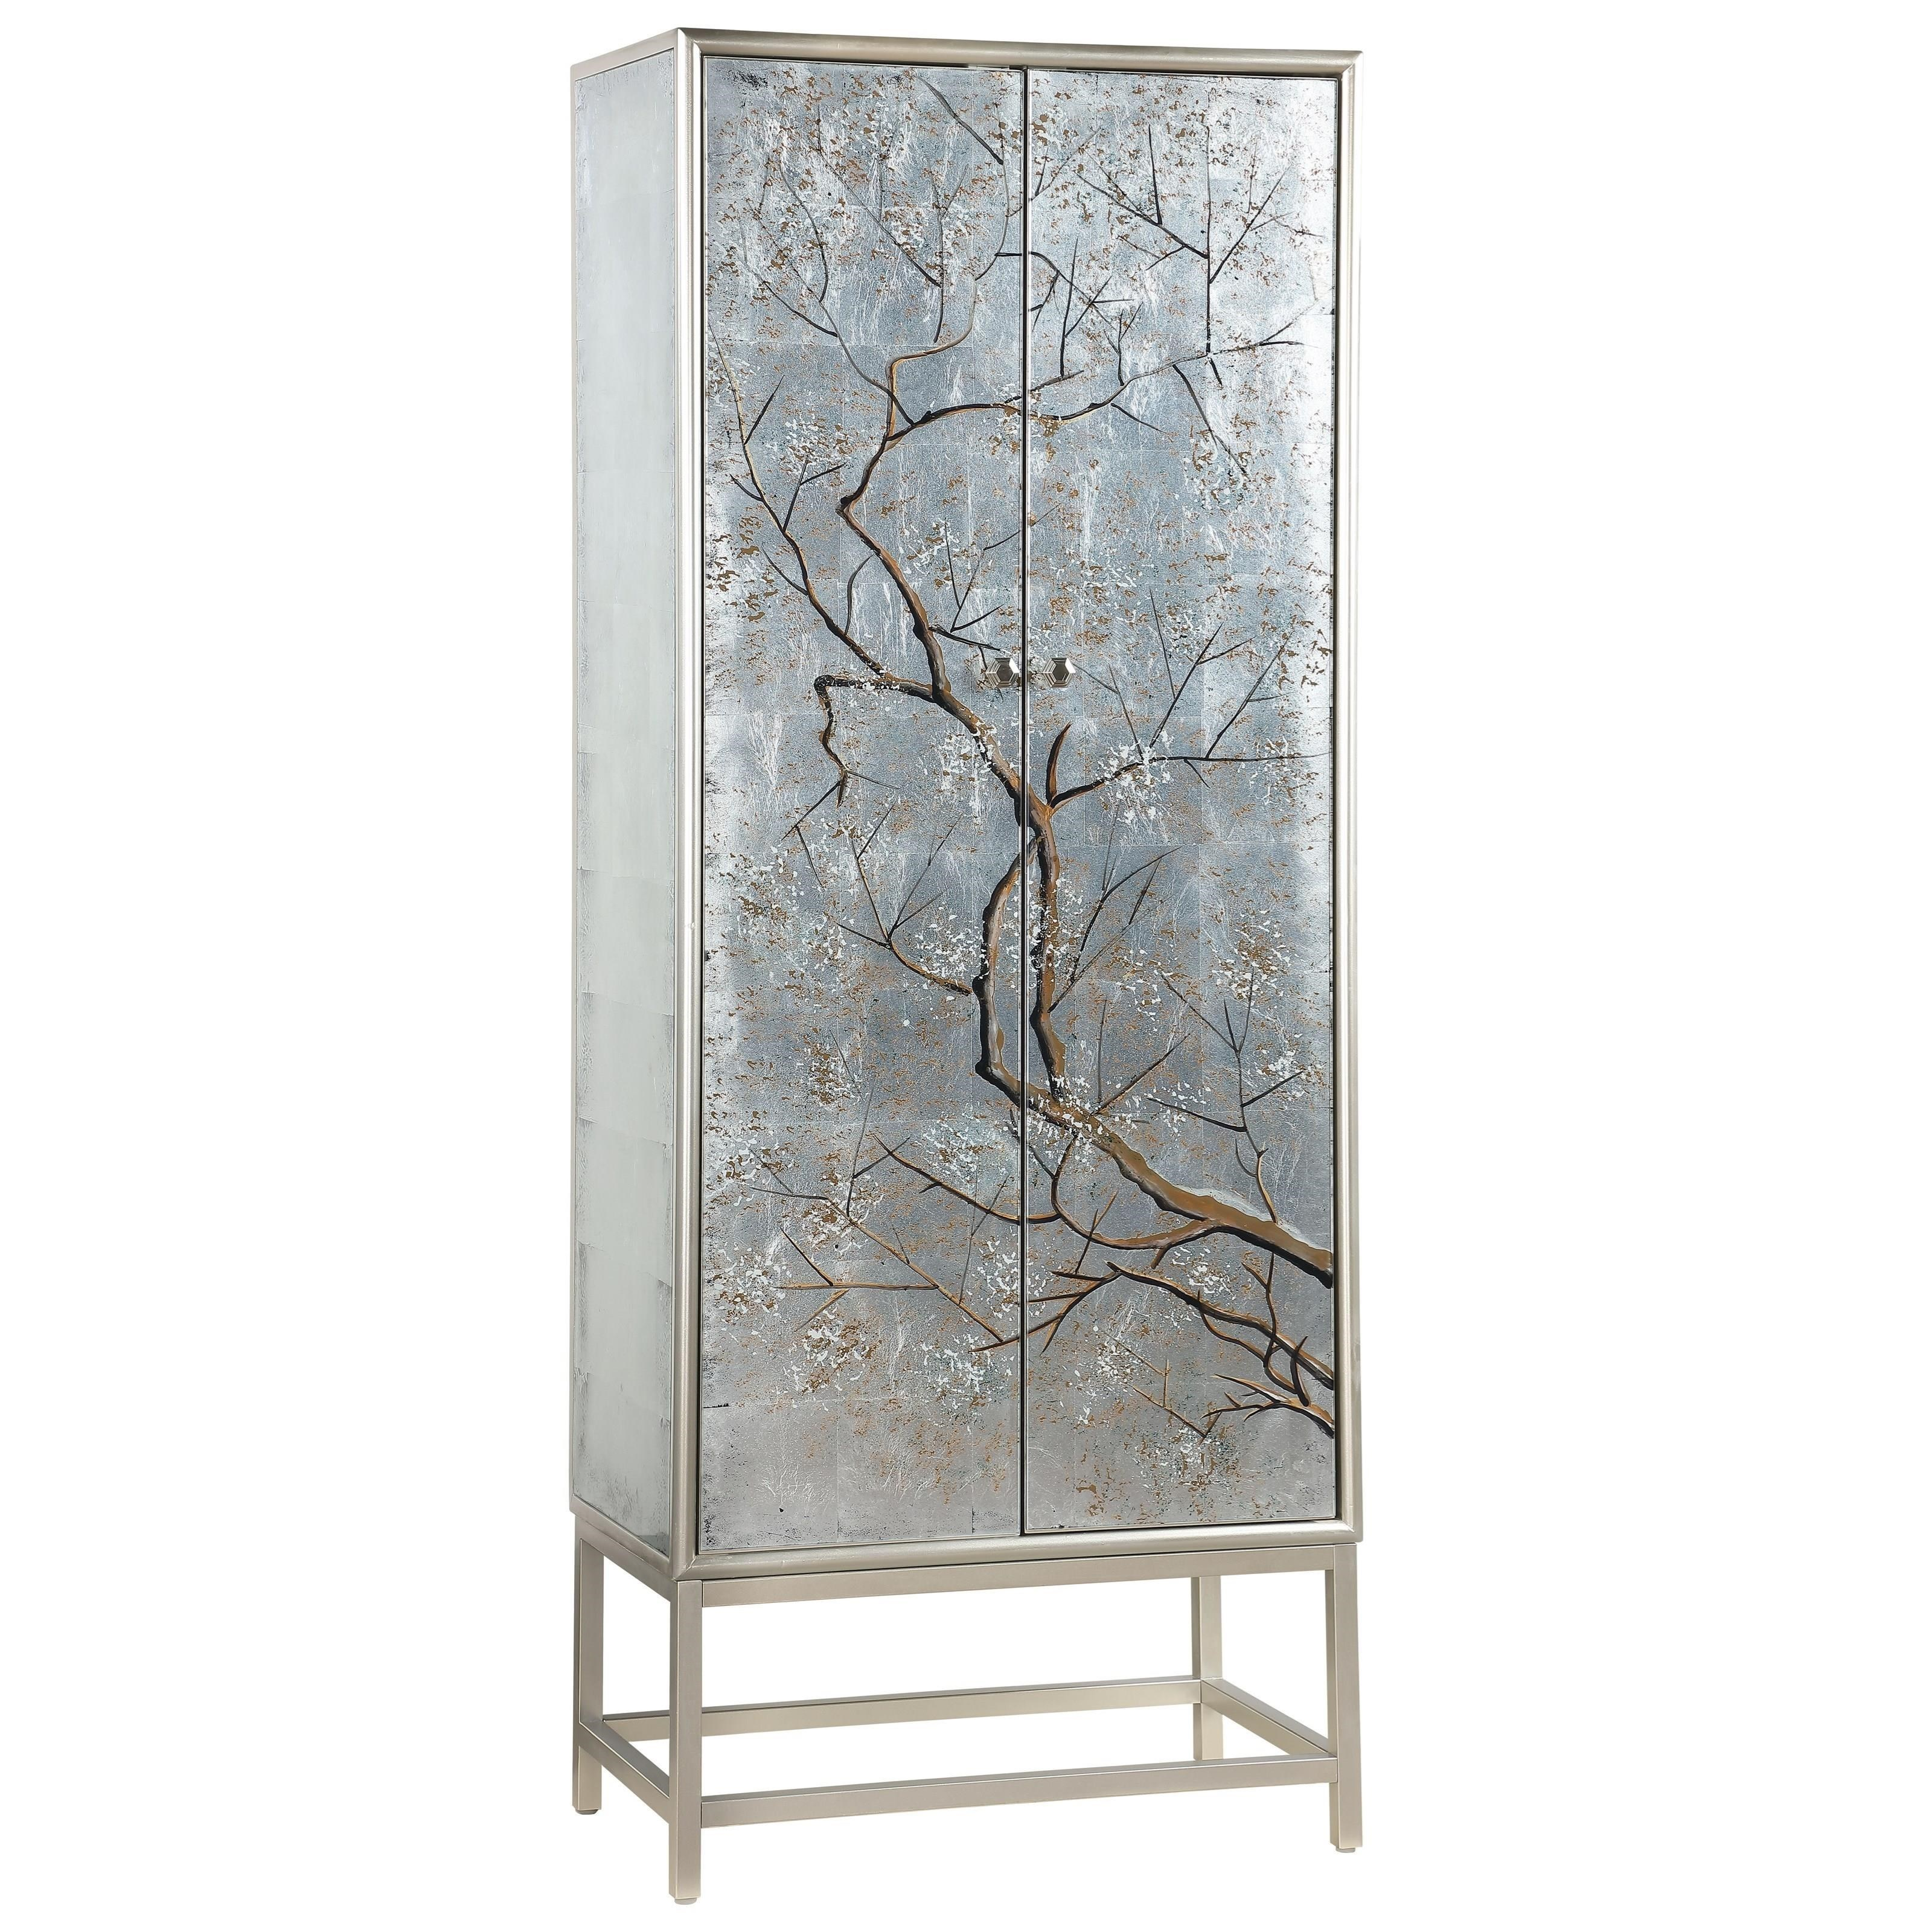 40270 2-Door Wine Cabinet by Coast to Coast Imports at Prime Brothers Furniture